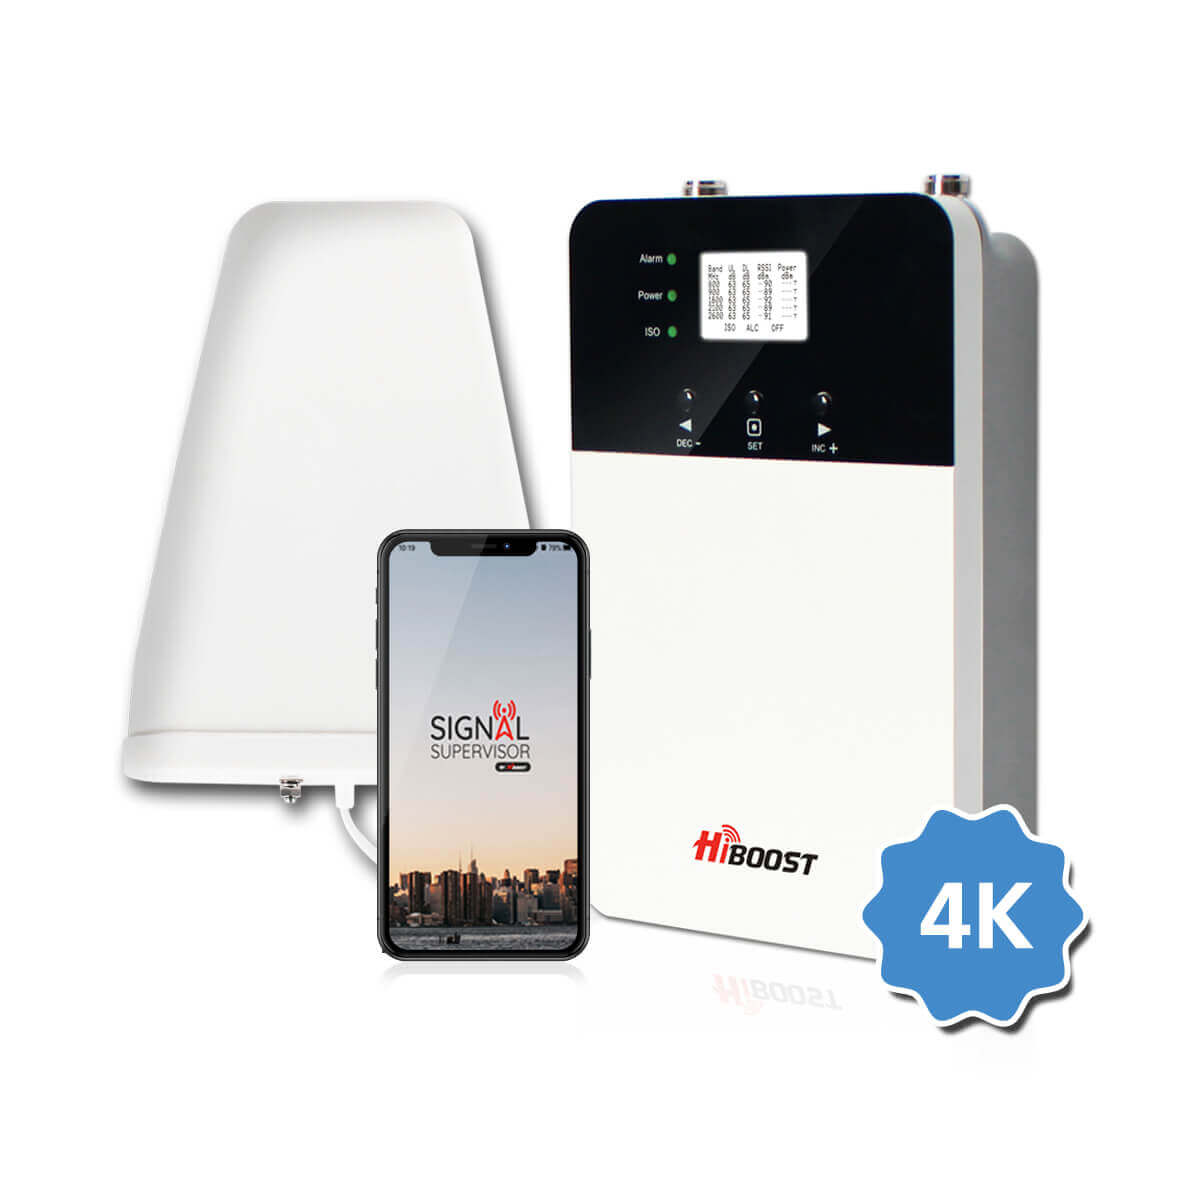 Hiboost-4K-Plus-Cell-Phone-Signal-Booster